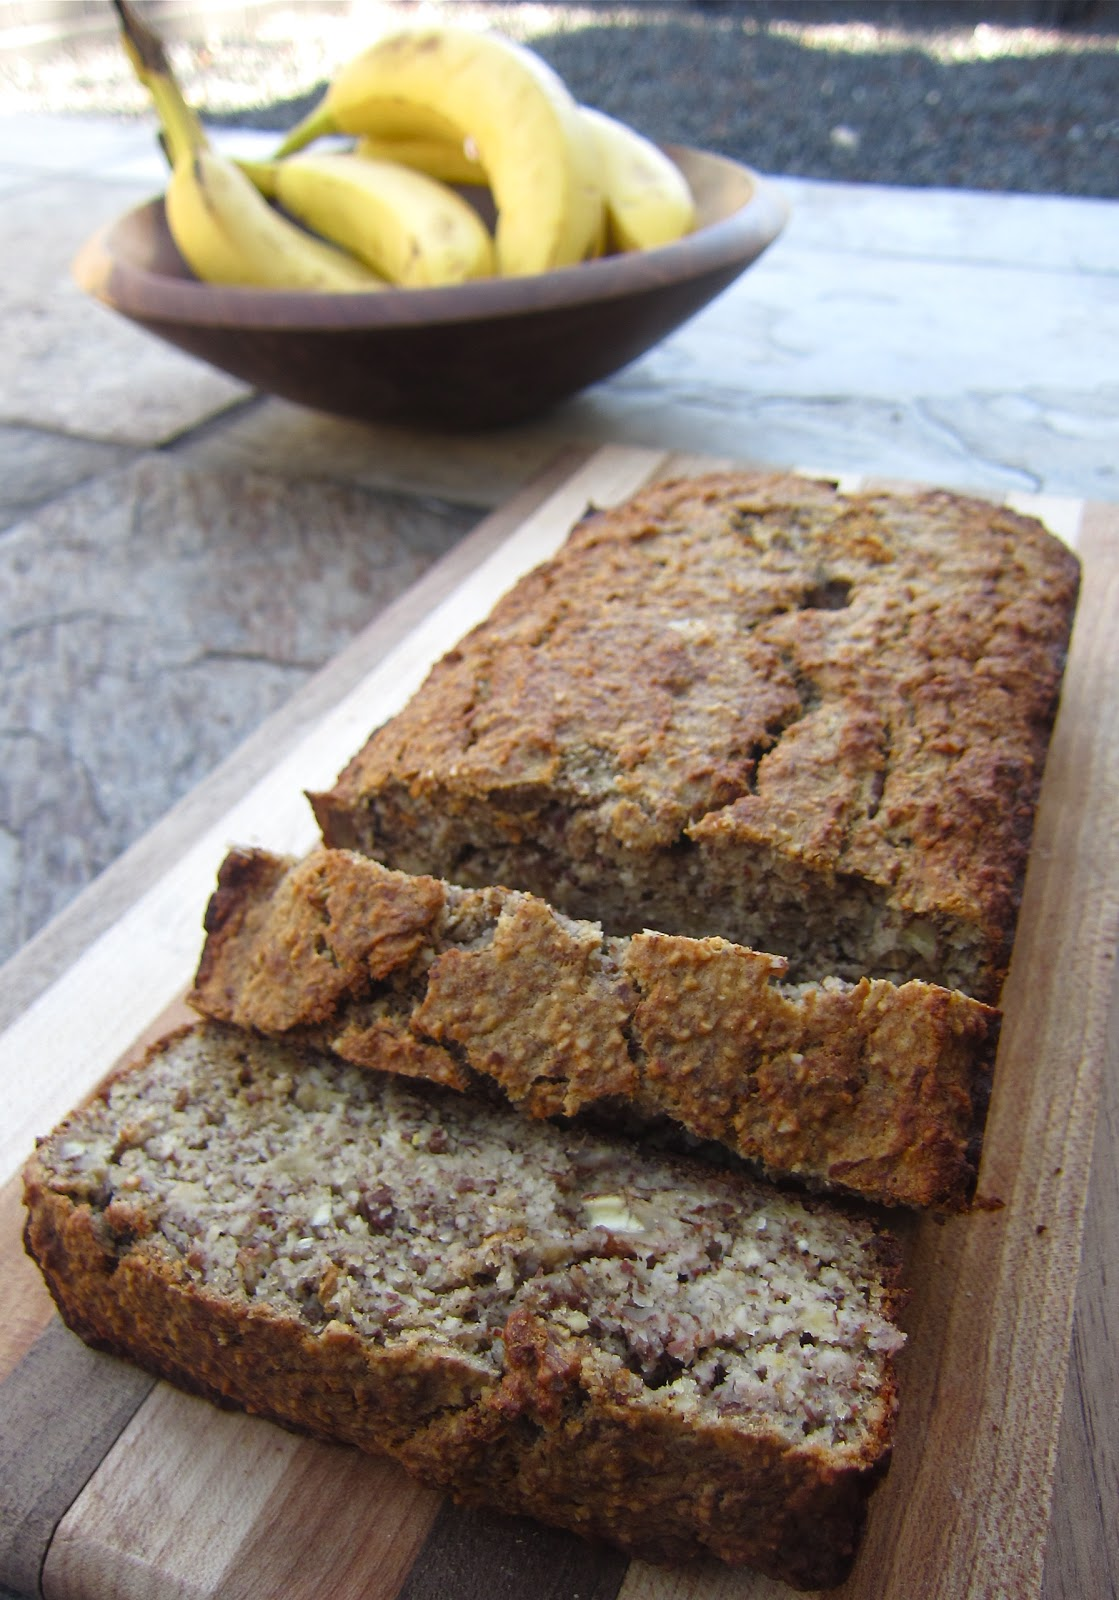 Easy Chocolate Chip Banana Bread Recipe Without Baking Soda